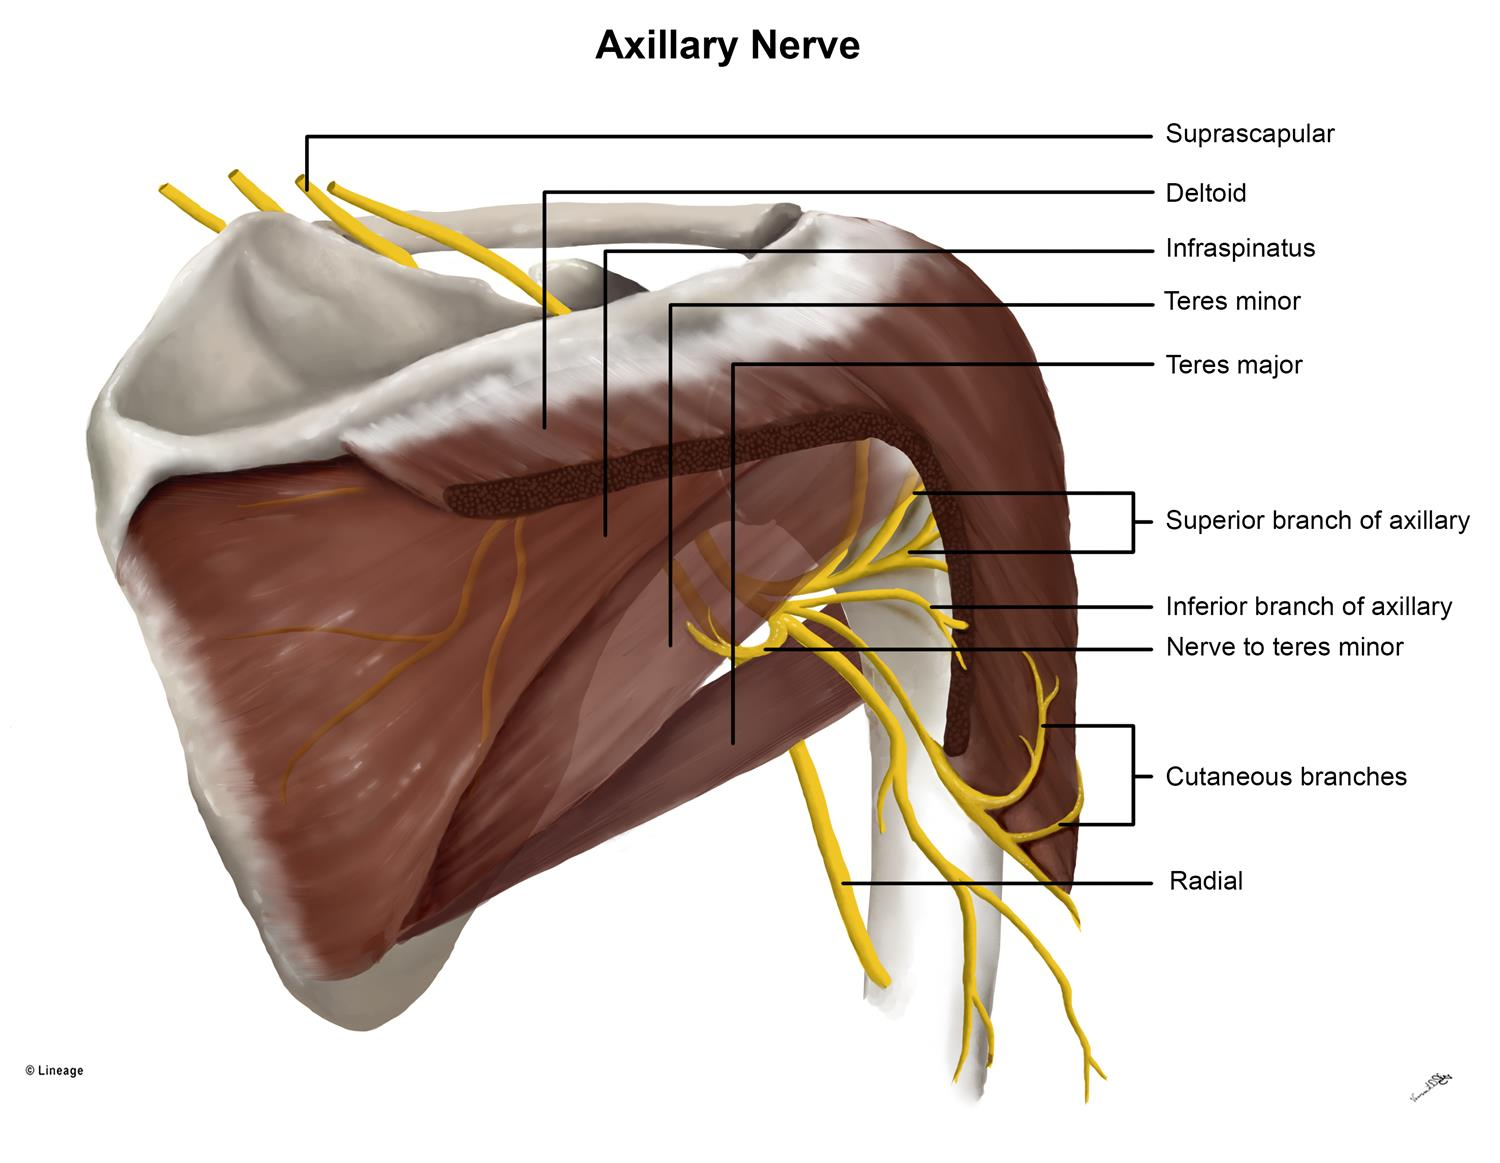 https://upload.medbullets.com/topic/121974/images/axiliary_nerve_with_muscles.jpg